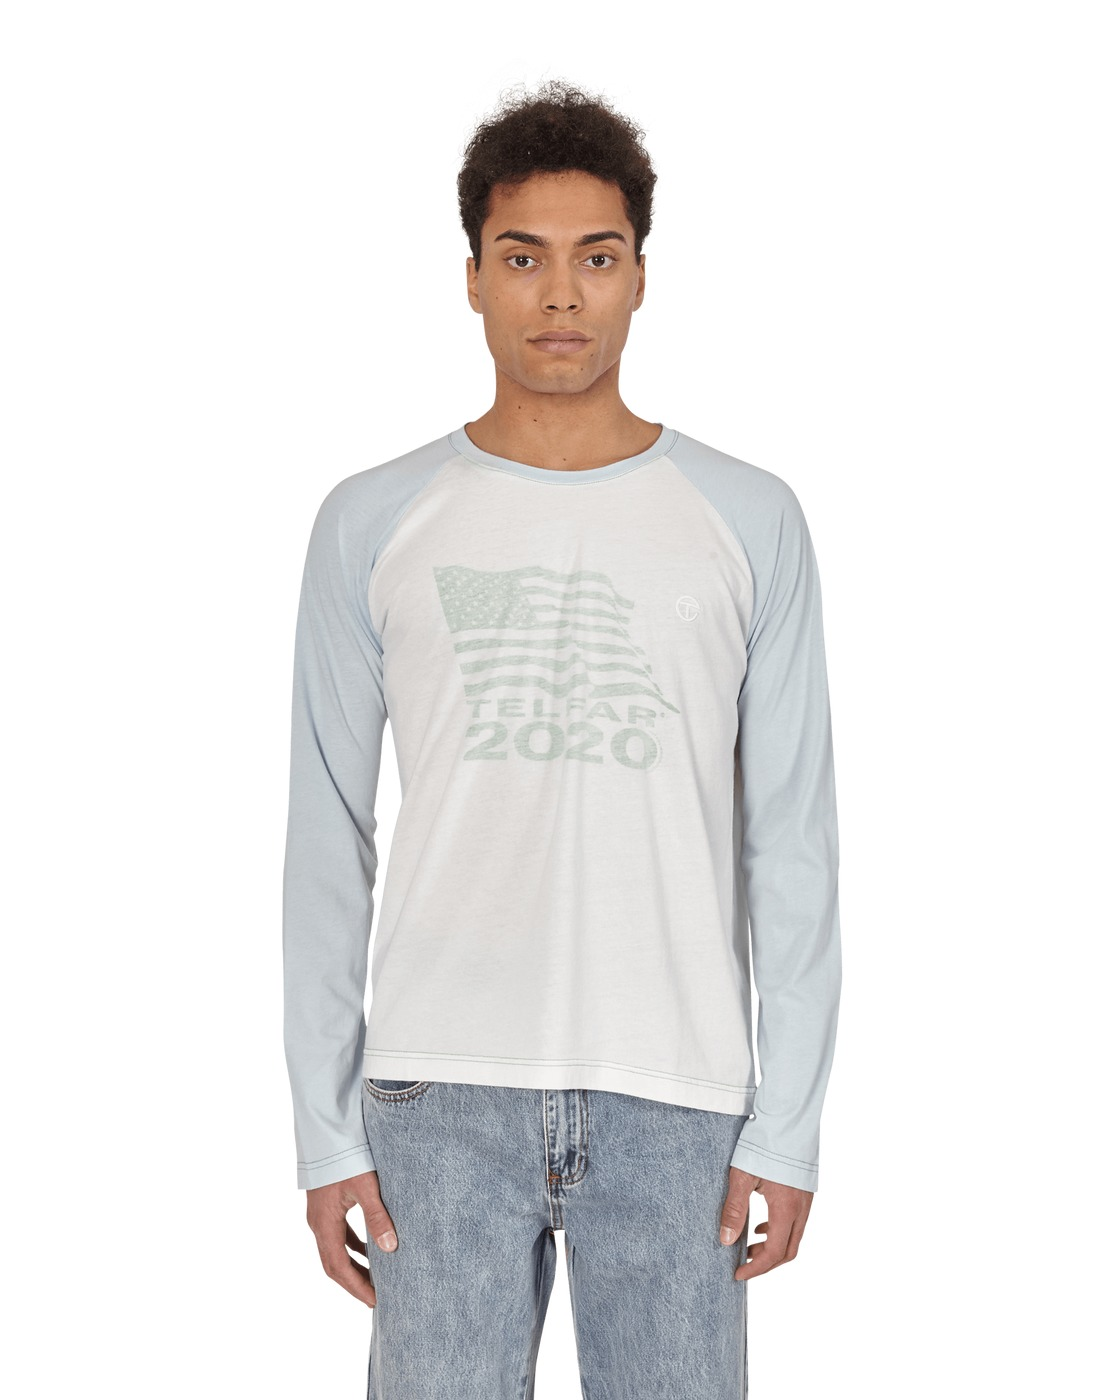 Photo: Telfar 2020 Long Sleeve T Shirt Baby Blue